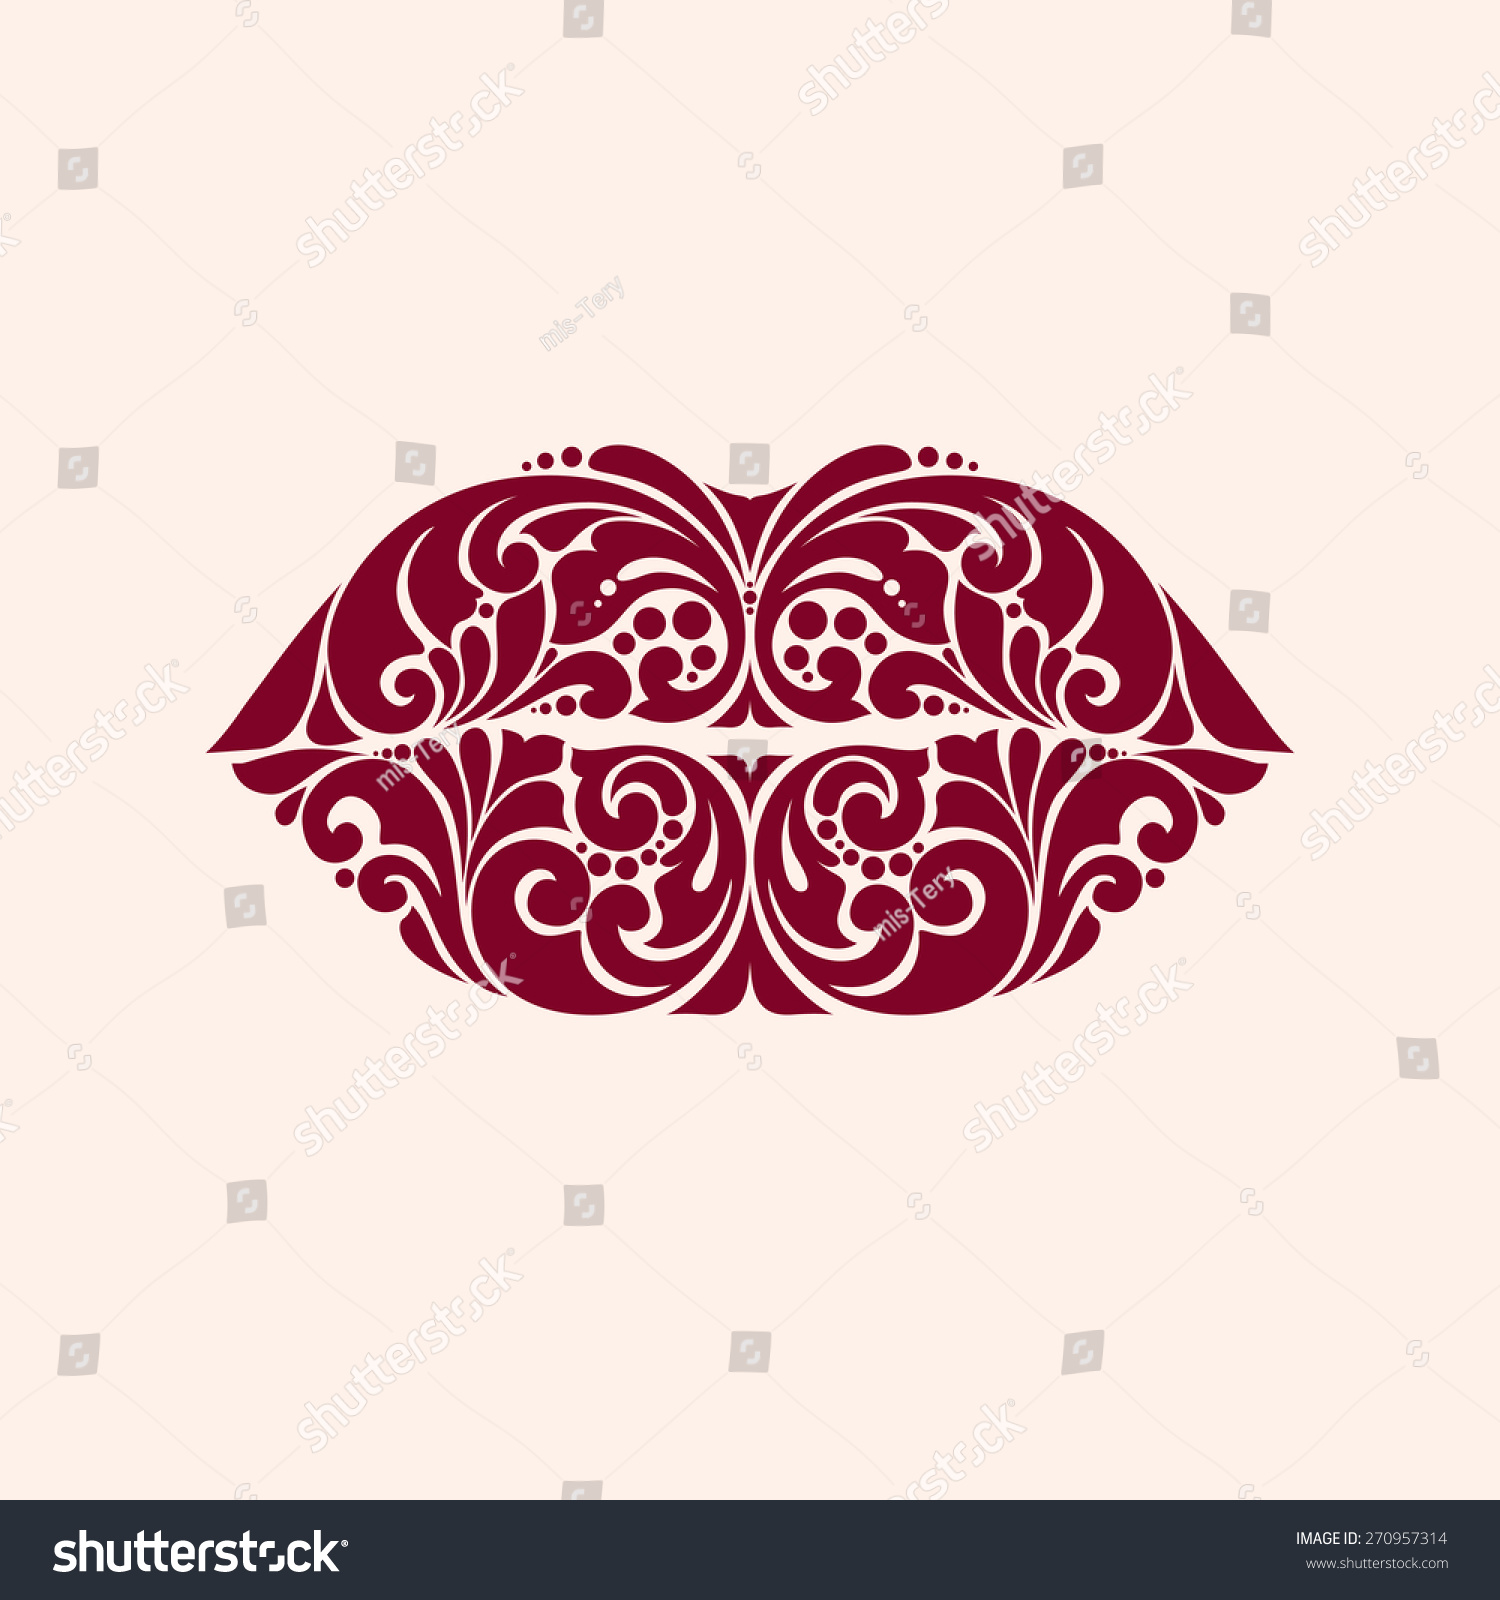 ornate red lips icon logo kiss stock vector 270957314